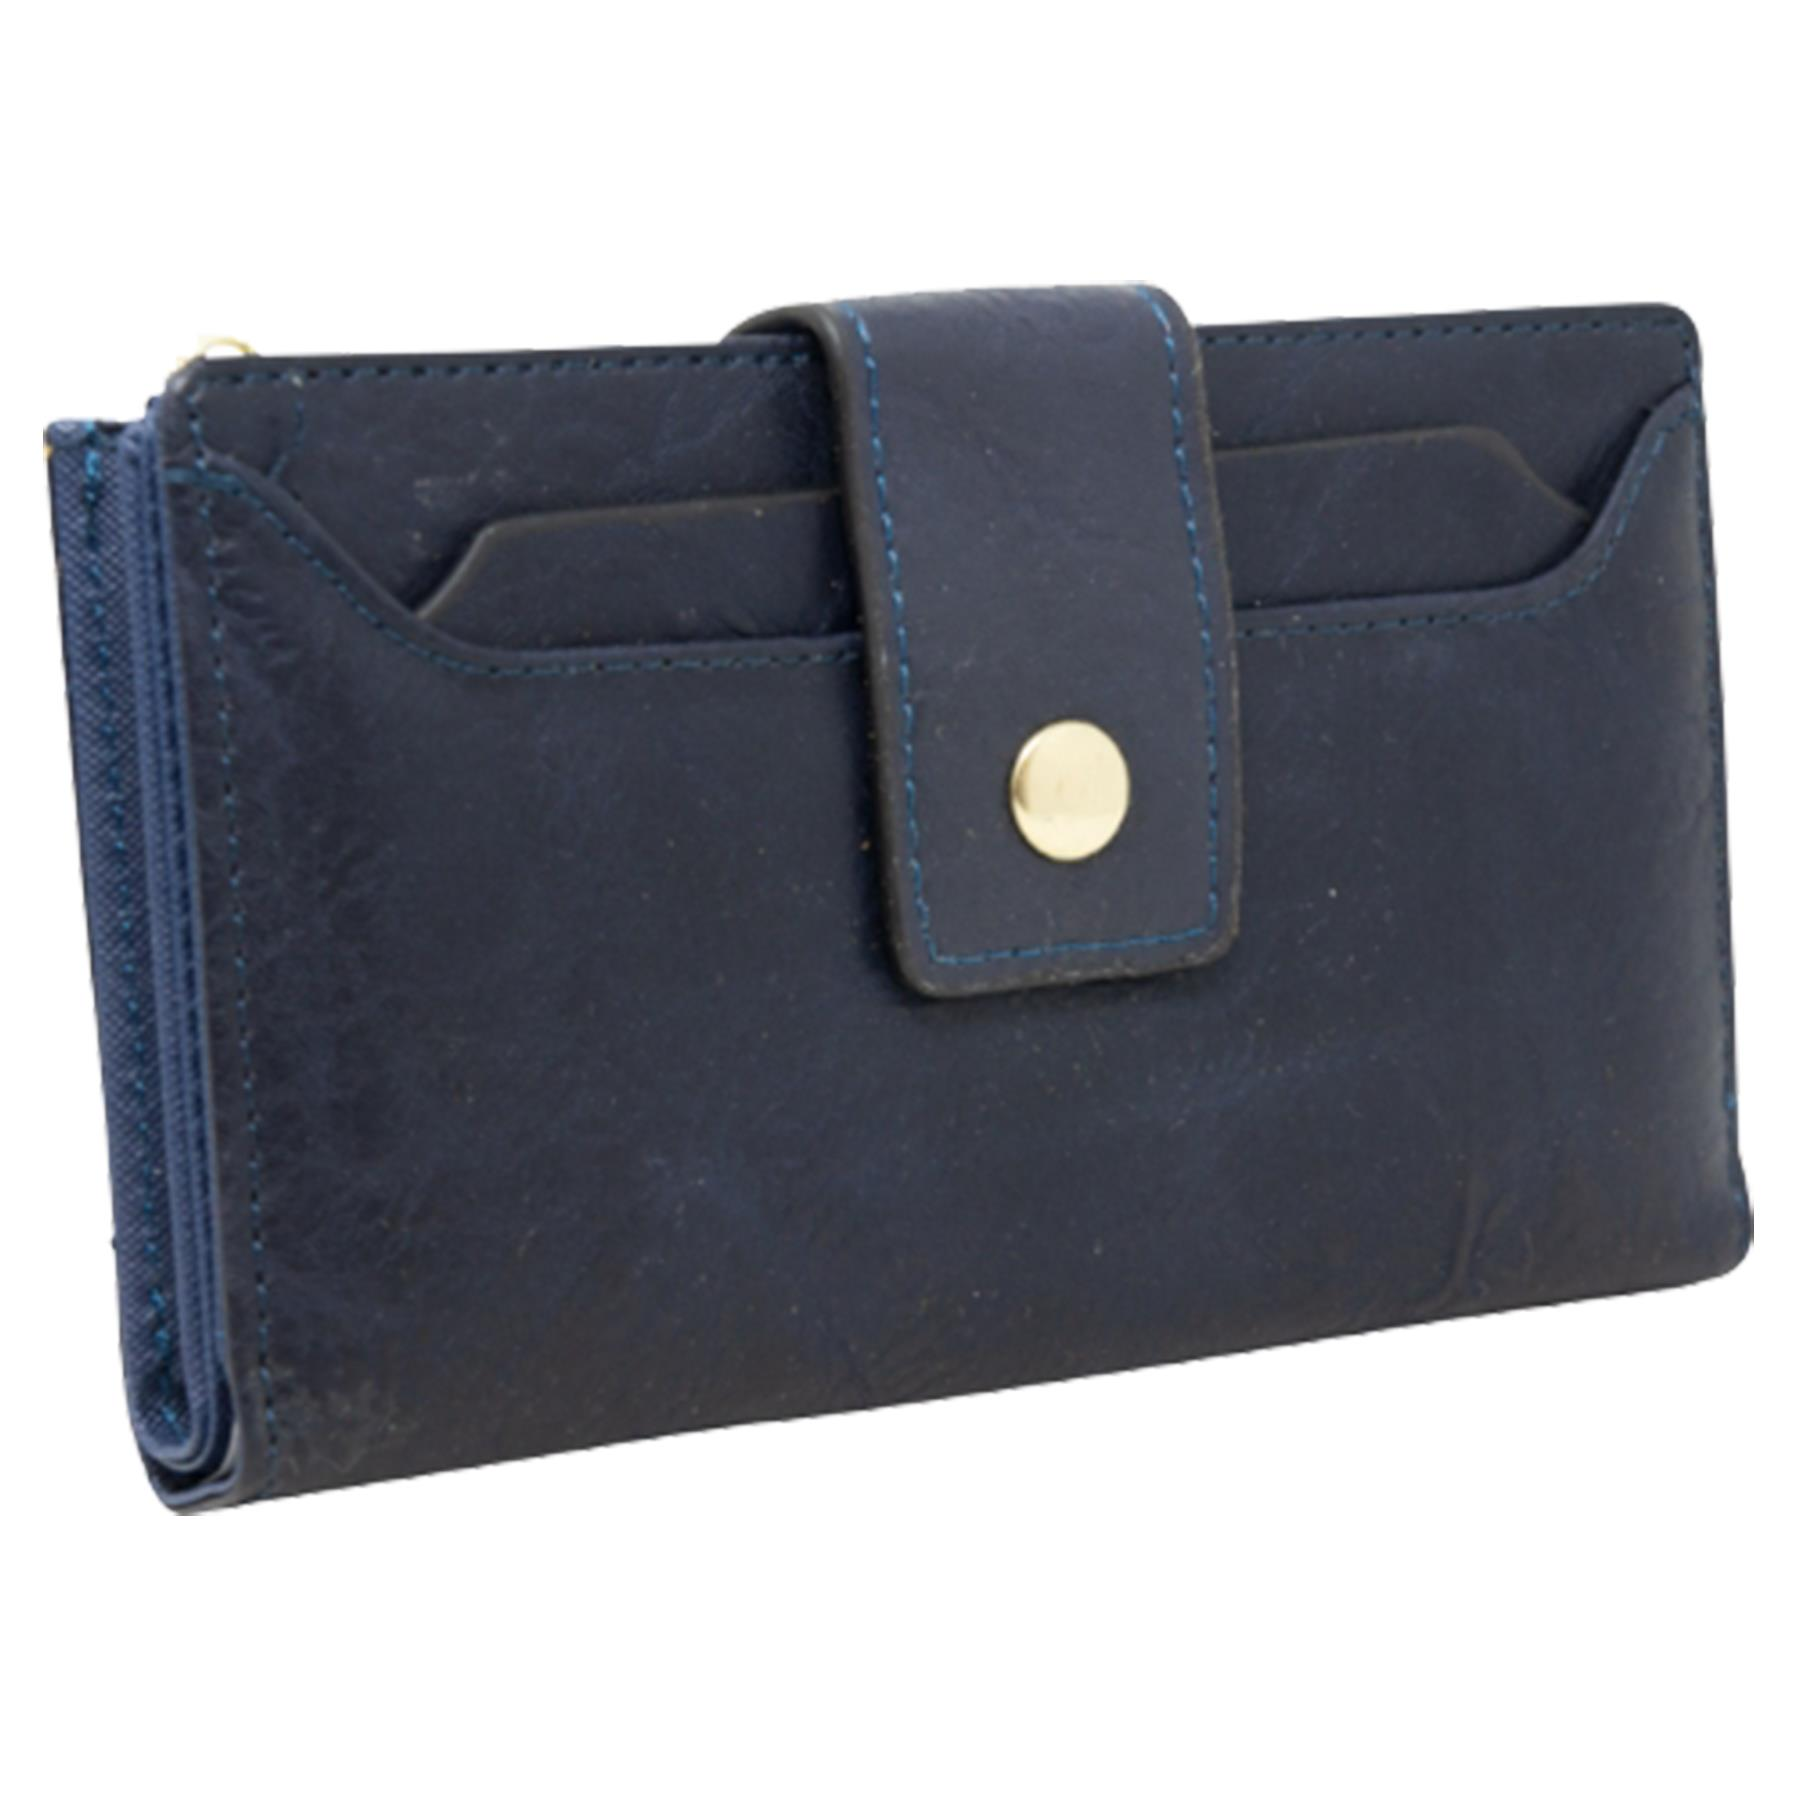 New-Soft-Plain-Synthetic-Leather-Card-Organiser-Ladies-Long-Purse thumbnail 7